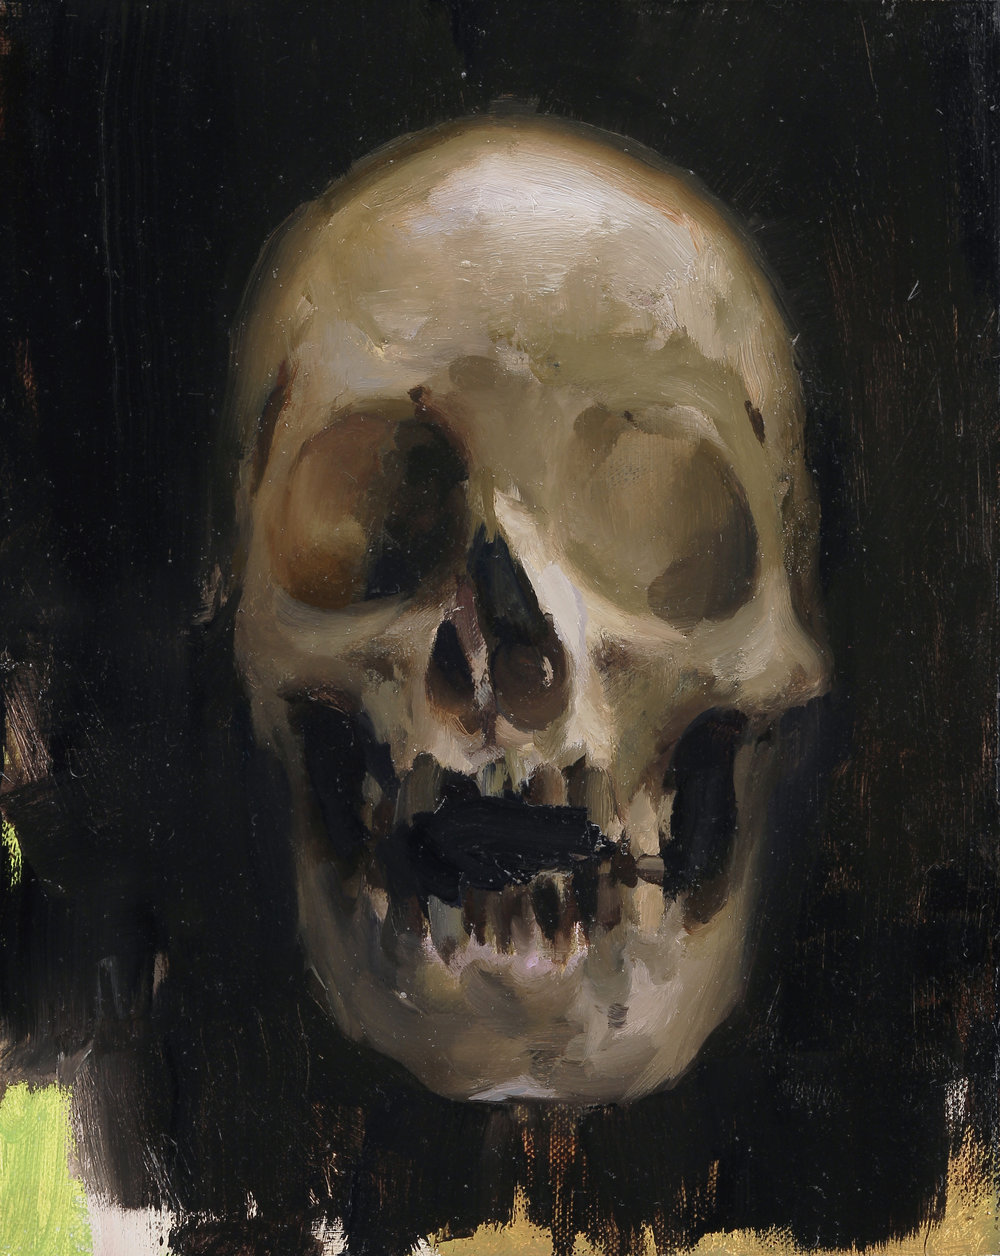 Skull 10 X 8 inches oil on aluminum panel